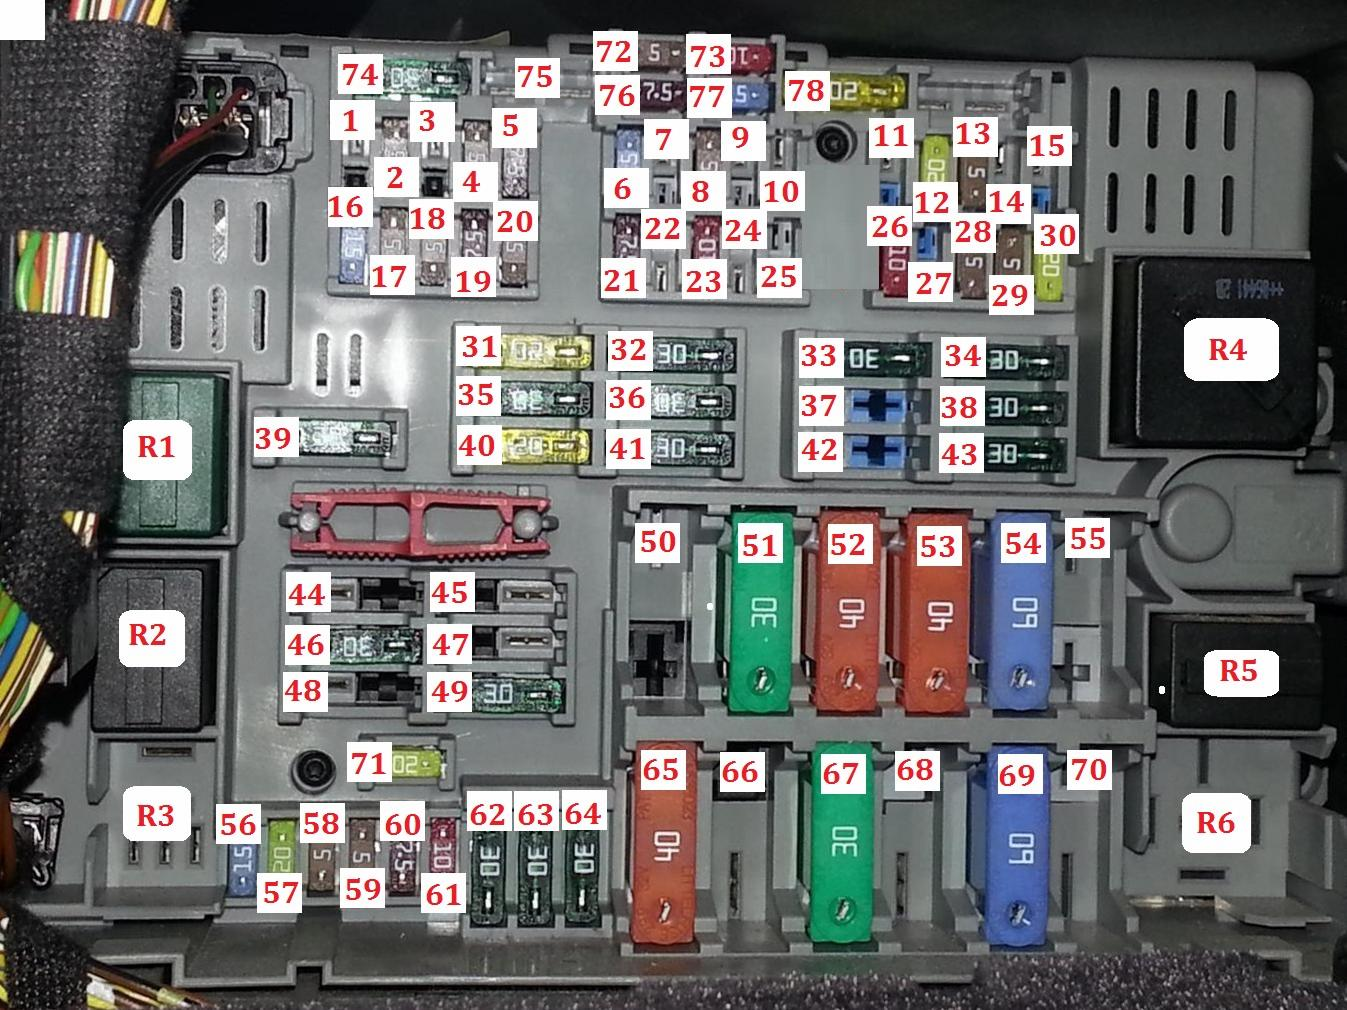 Peugeot 206 Fuse Box And Relays Real Wiring Diagram Xs Relay Bmw E90 Ignition Switch Ecu Type